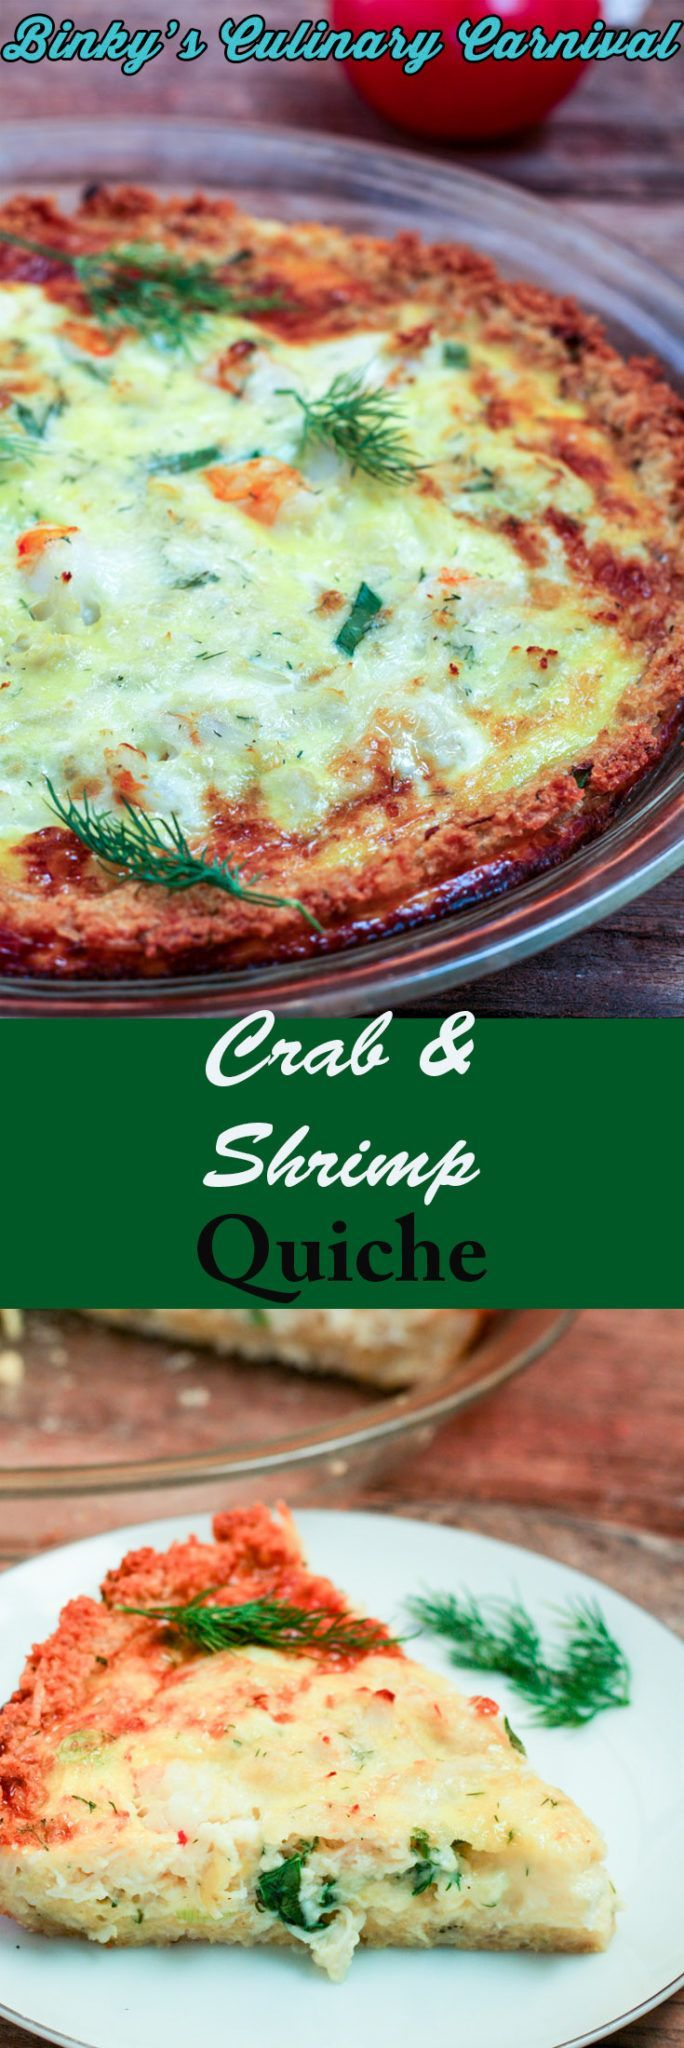 This #Crab #Shrimp #Quiche is Gluten Free! I use leftover rice for the crust, so it is fast and easy to make for any busy weeknight dinner or even a fancy brunch! #glutenfree #gf #ifbcx #binkysculinaryc via @binkysculinaryc